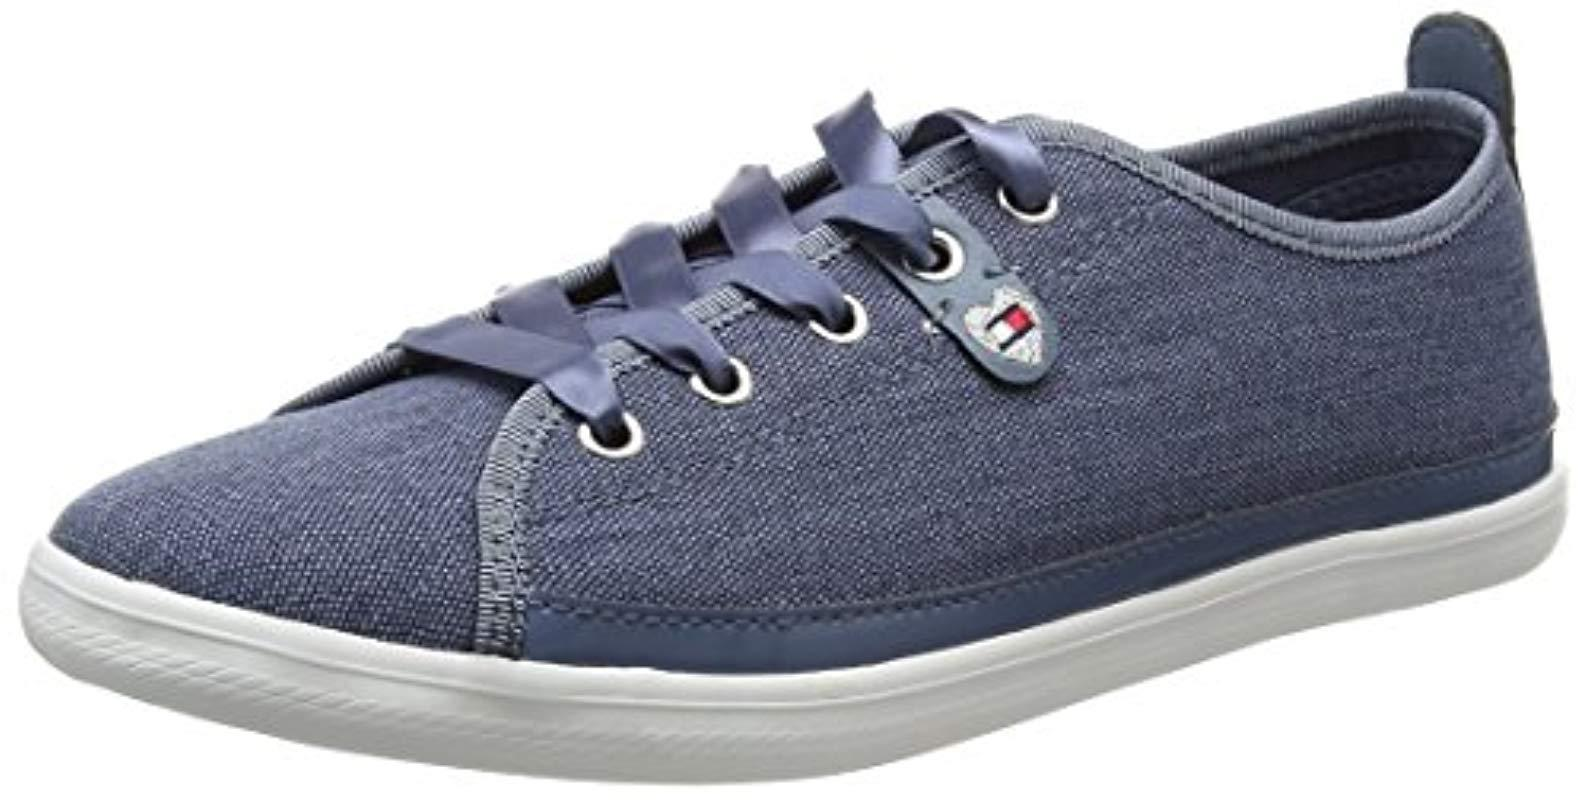 e6b2798193b Tommy Hilfiger K1285eira Hg 1d1 Low-top Sneakers in Blue - Lyst